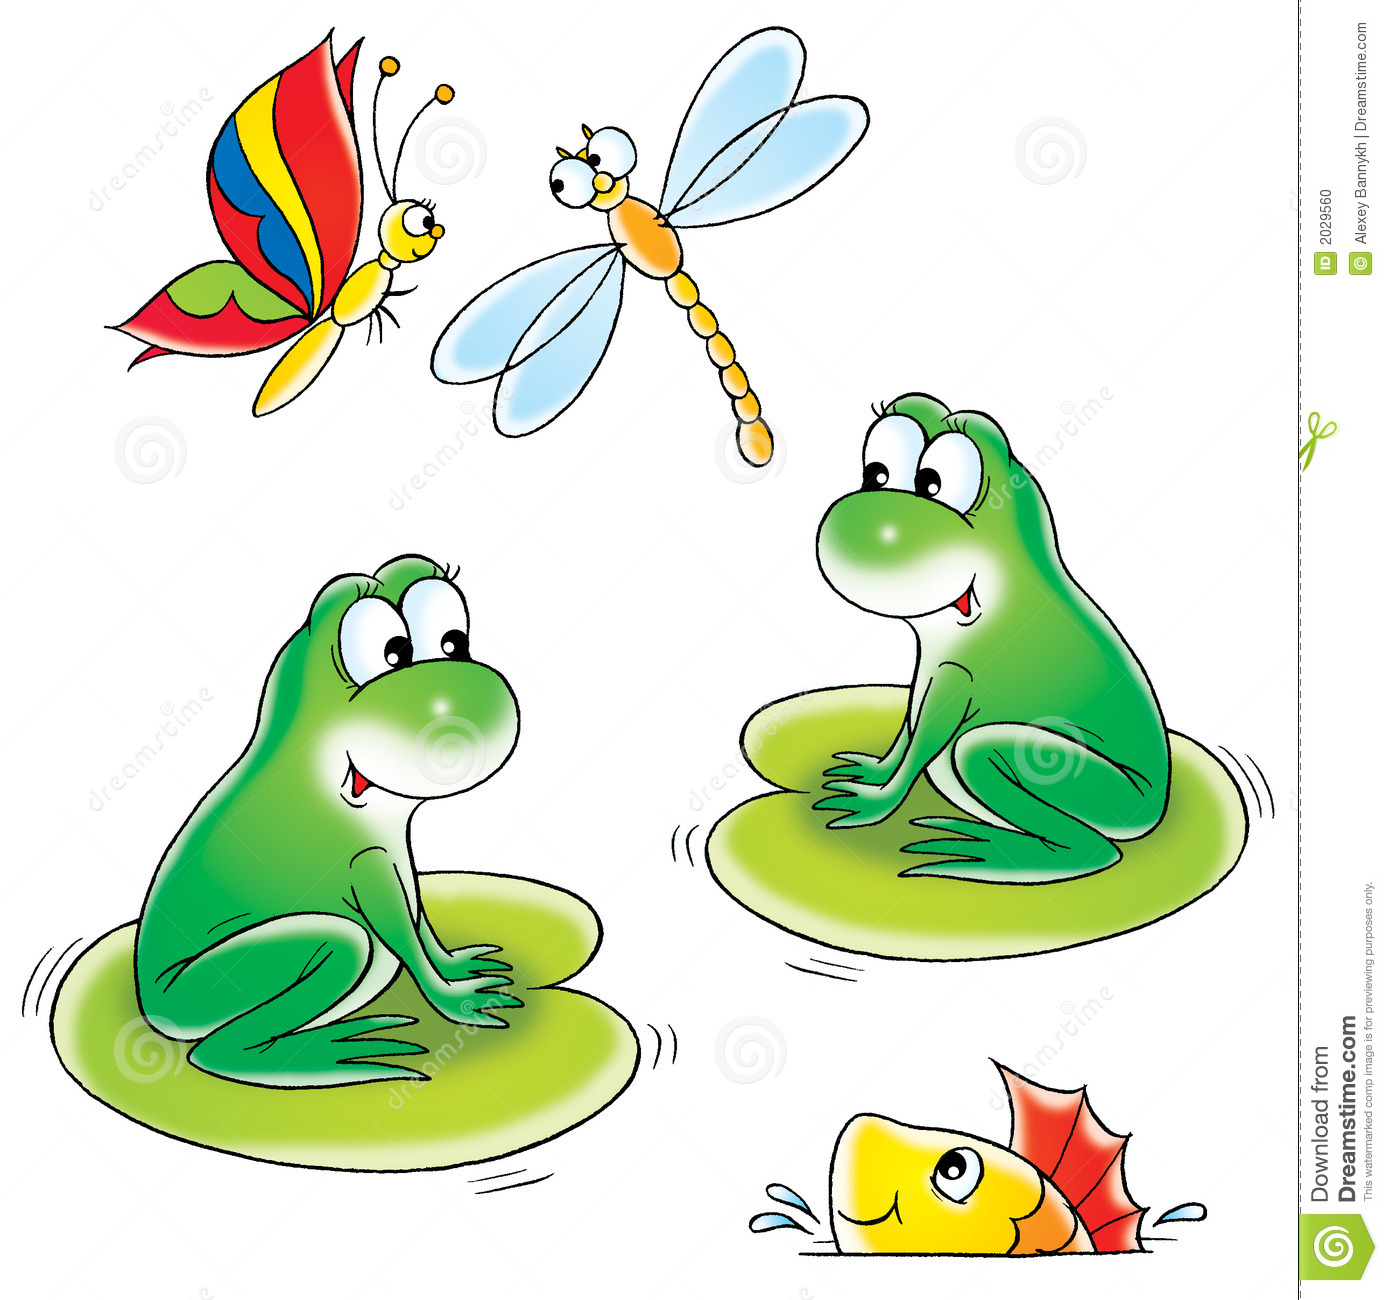 Isolated Clip Art And Children S Illustration For Yours Design